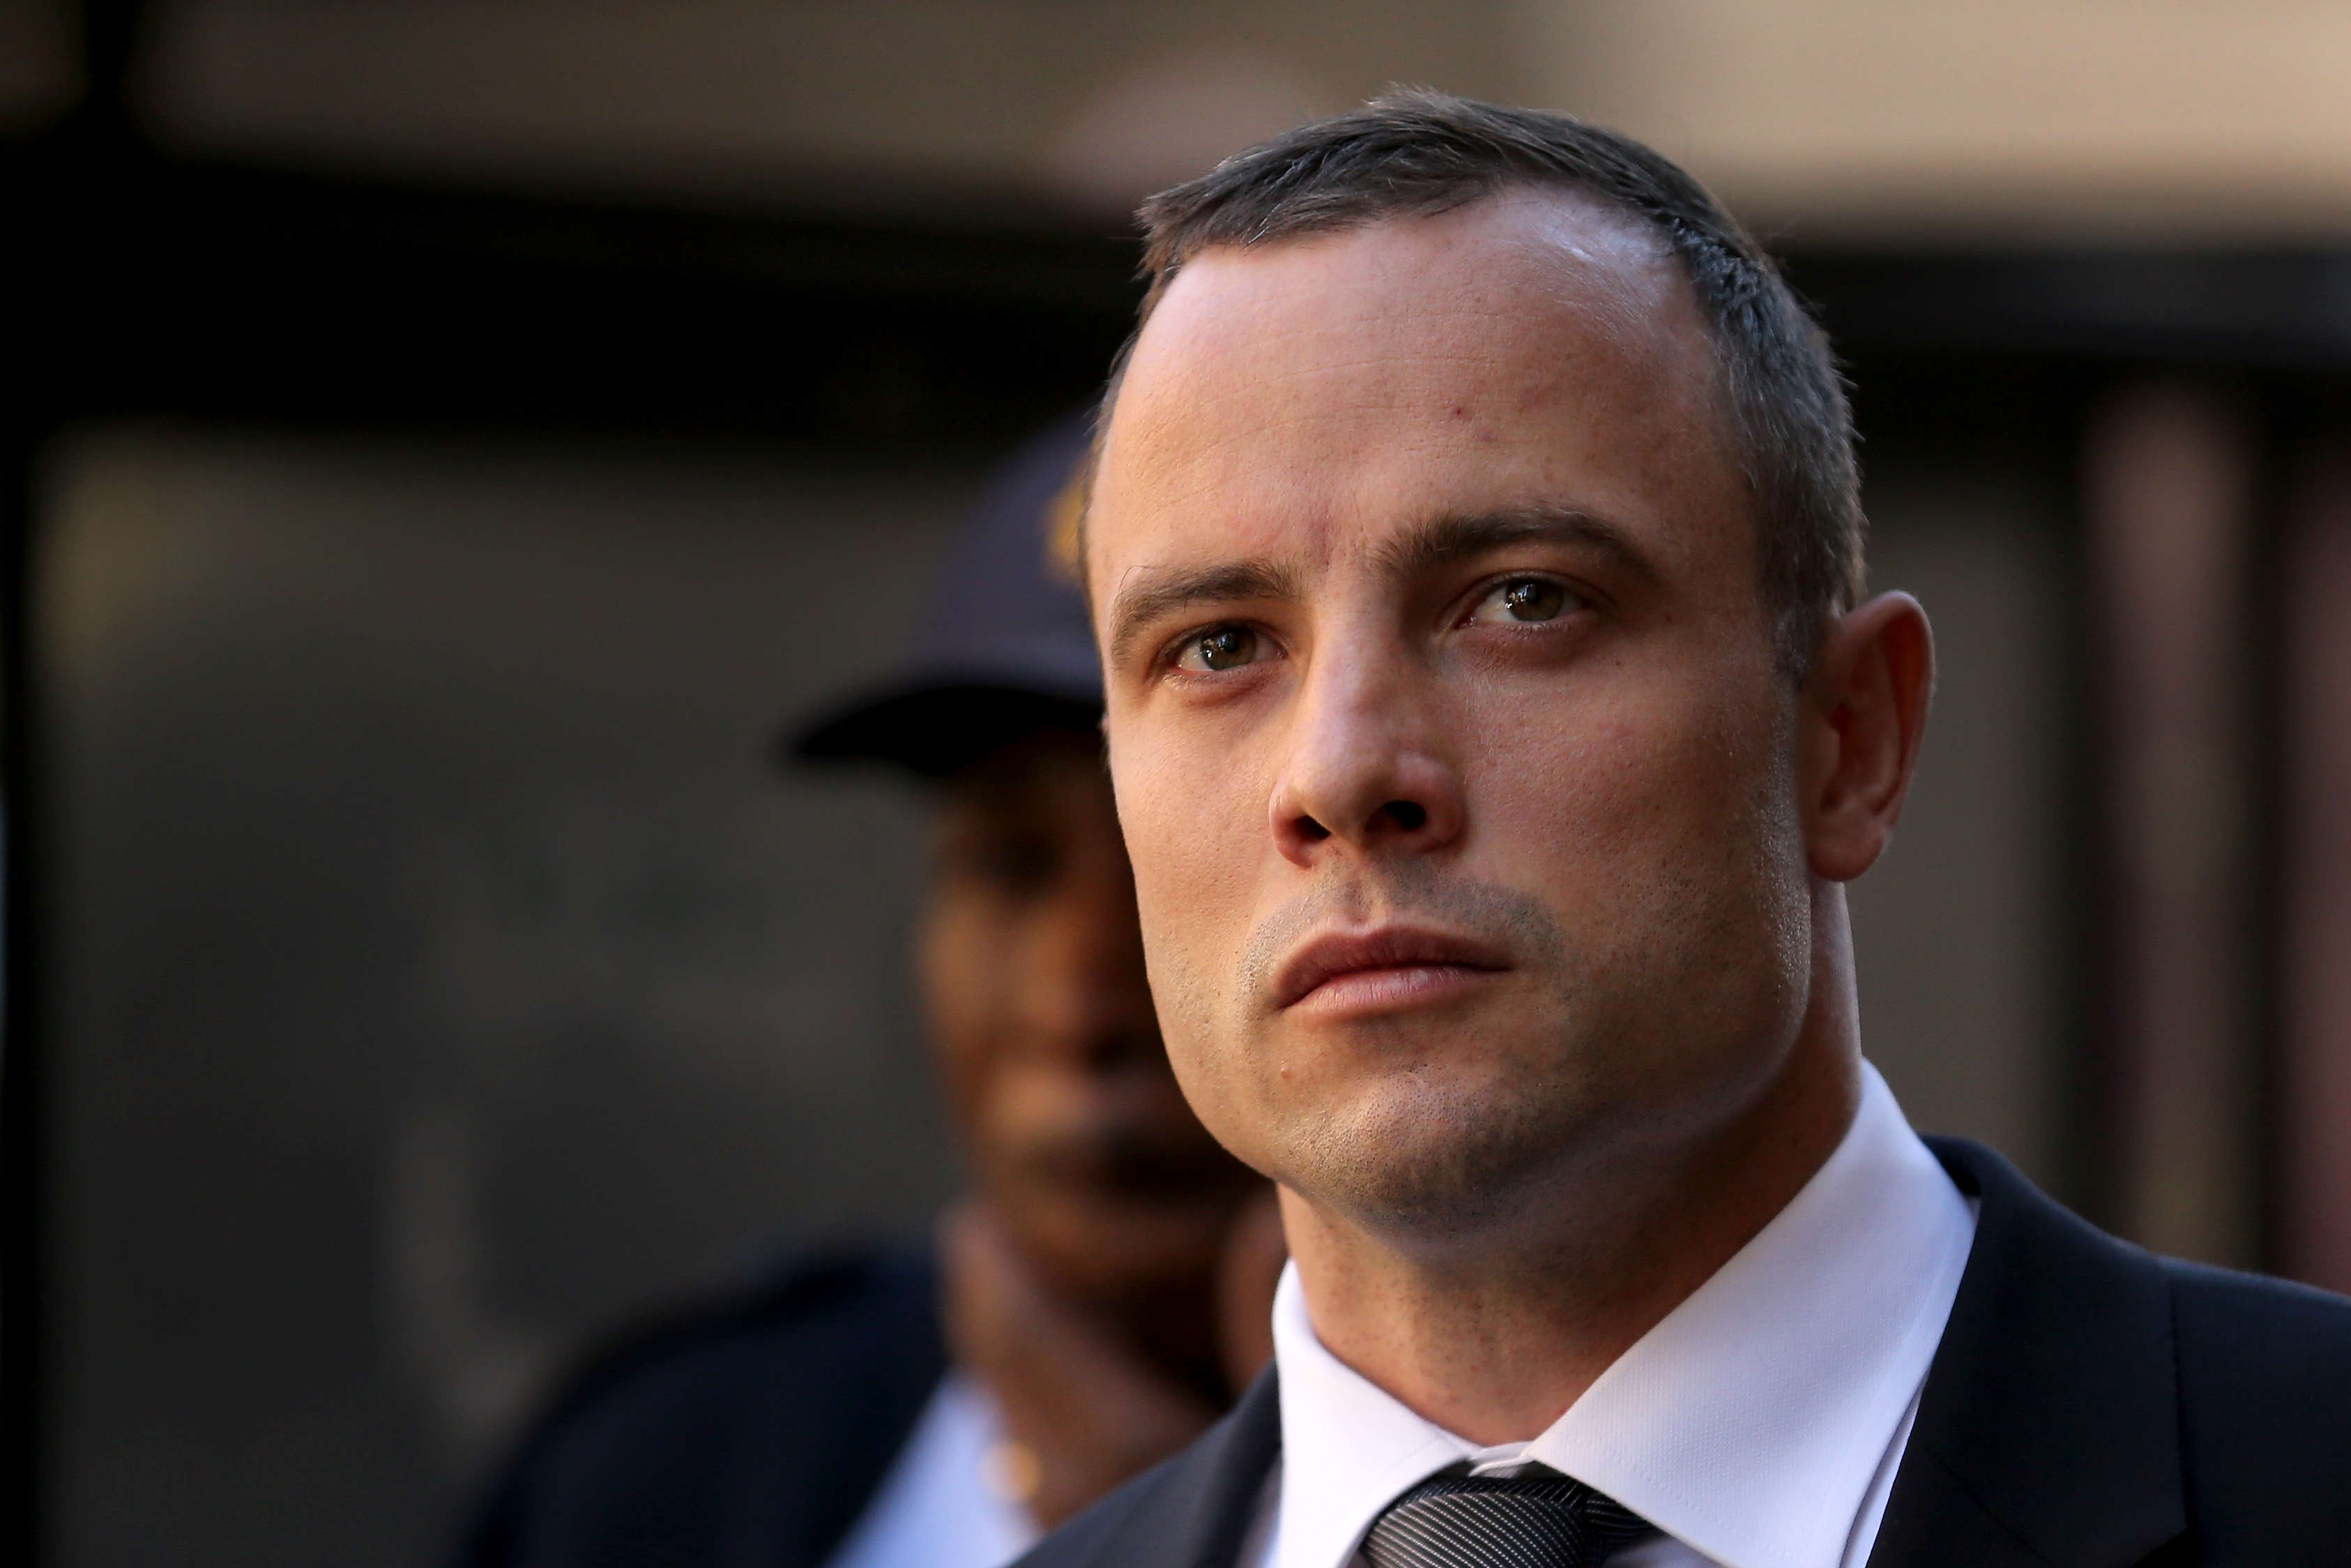 GettyImages 490302359 Oscar Pistorius Shocks Court By Walking On His Stumps